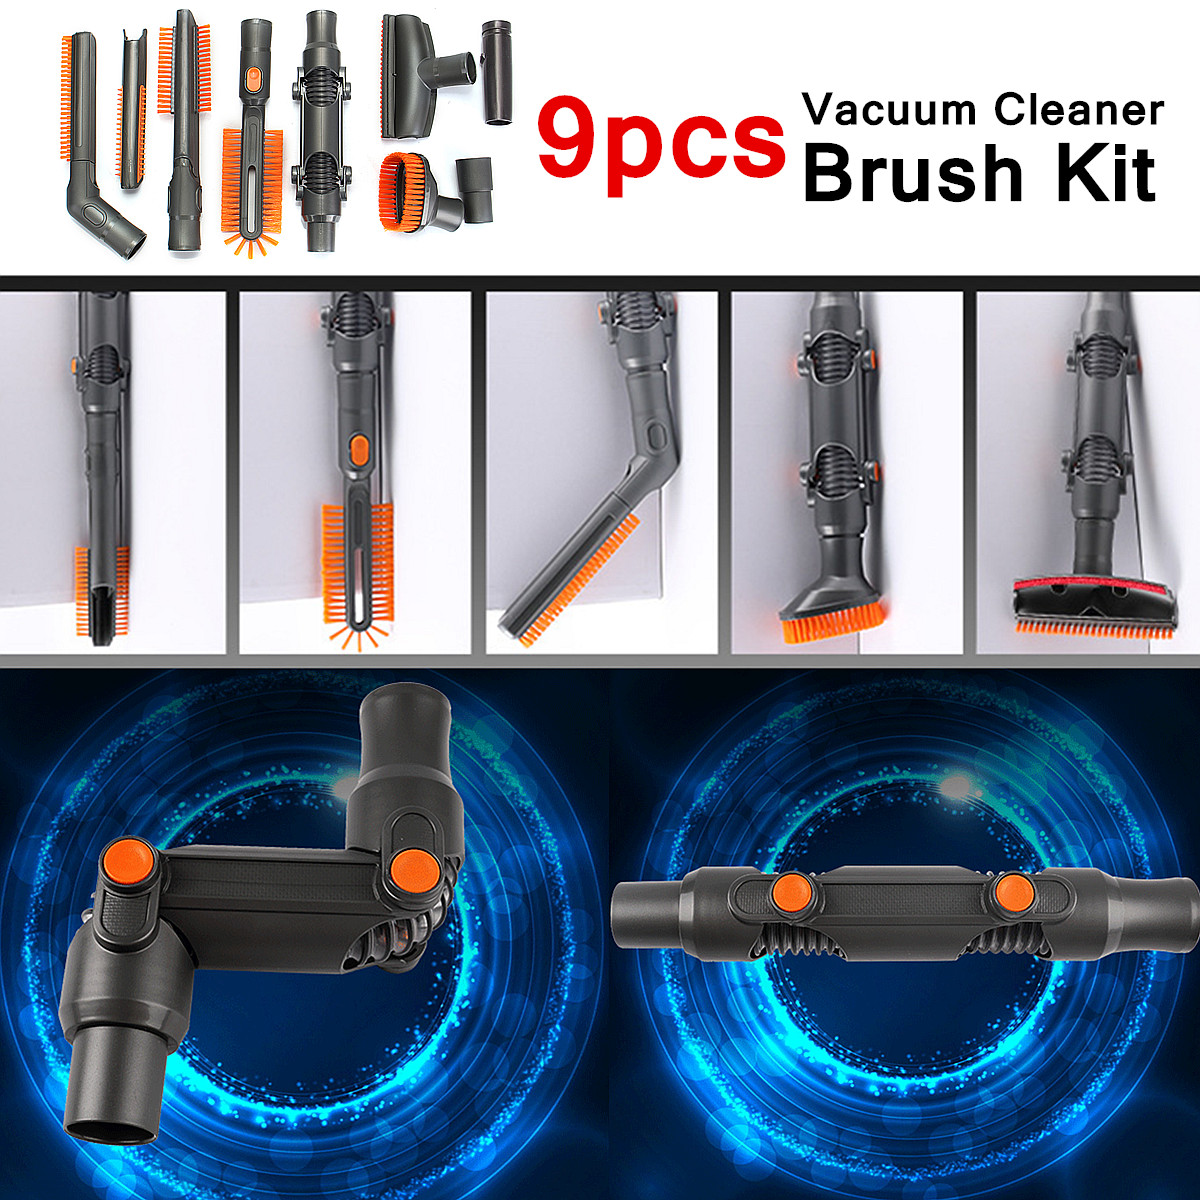 9PCS for Dyson Vacuum Cleaners Vacuum Cleaner Brush Tool Adapter Kit DC Series fit 32mm/35mm Diameter Fitting Deeper Clean 3 pieces lot vacuum cleaner brush hose tool kit for karcher vacuum cleaners 35mm crevice brush